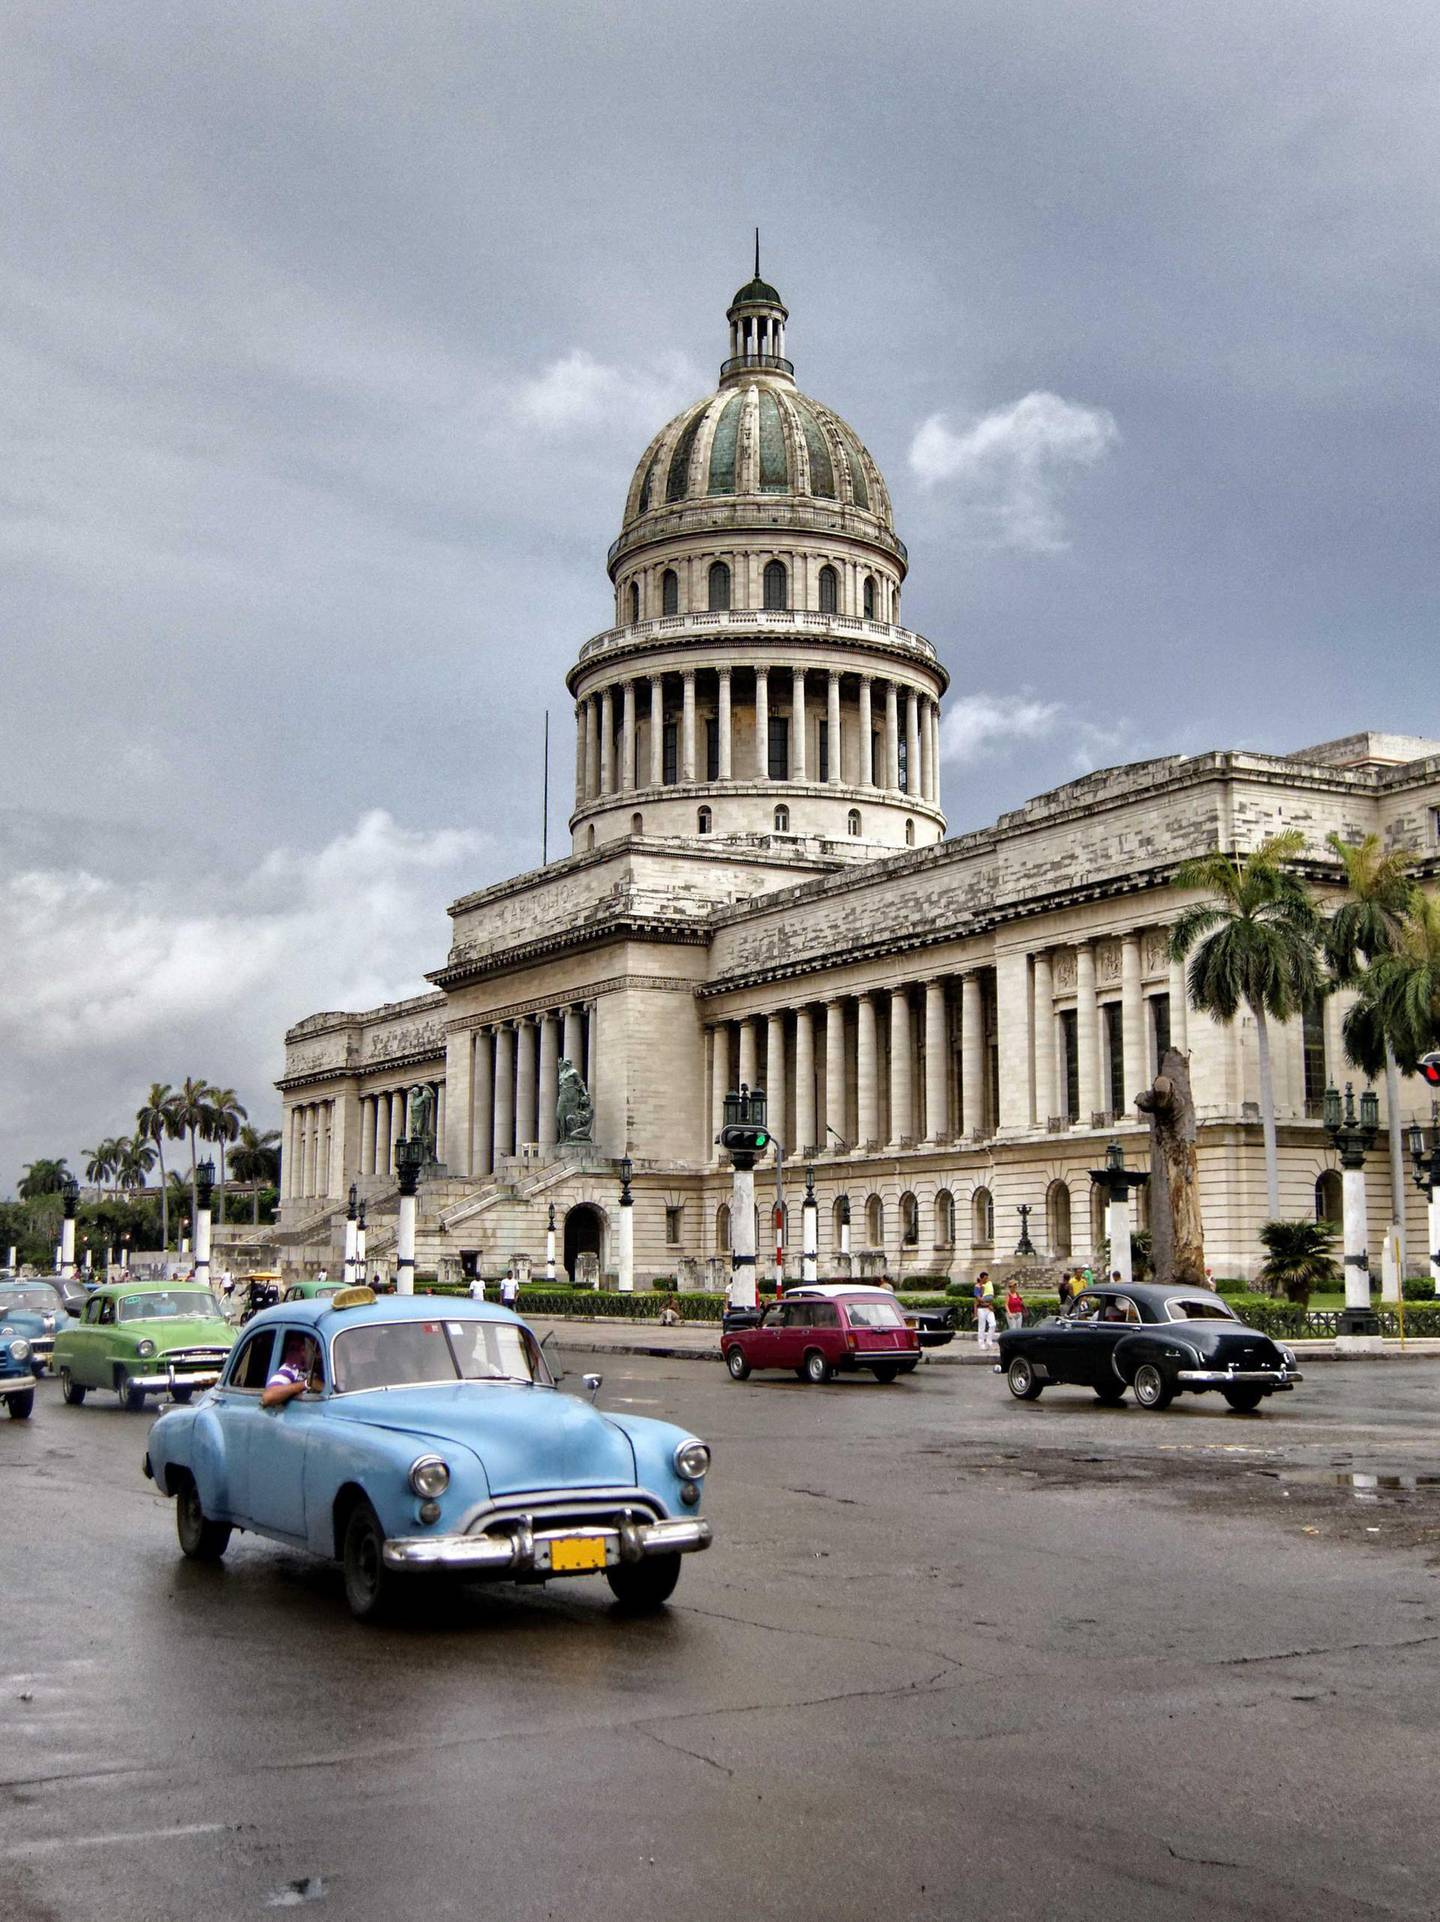 El Capitolio was the seat of government in Cuba until after the Cuban Revolution in 1959, and is now home to the Cuban Academy of Sciences. Getty Images